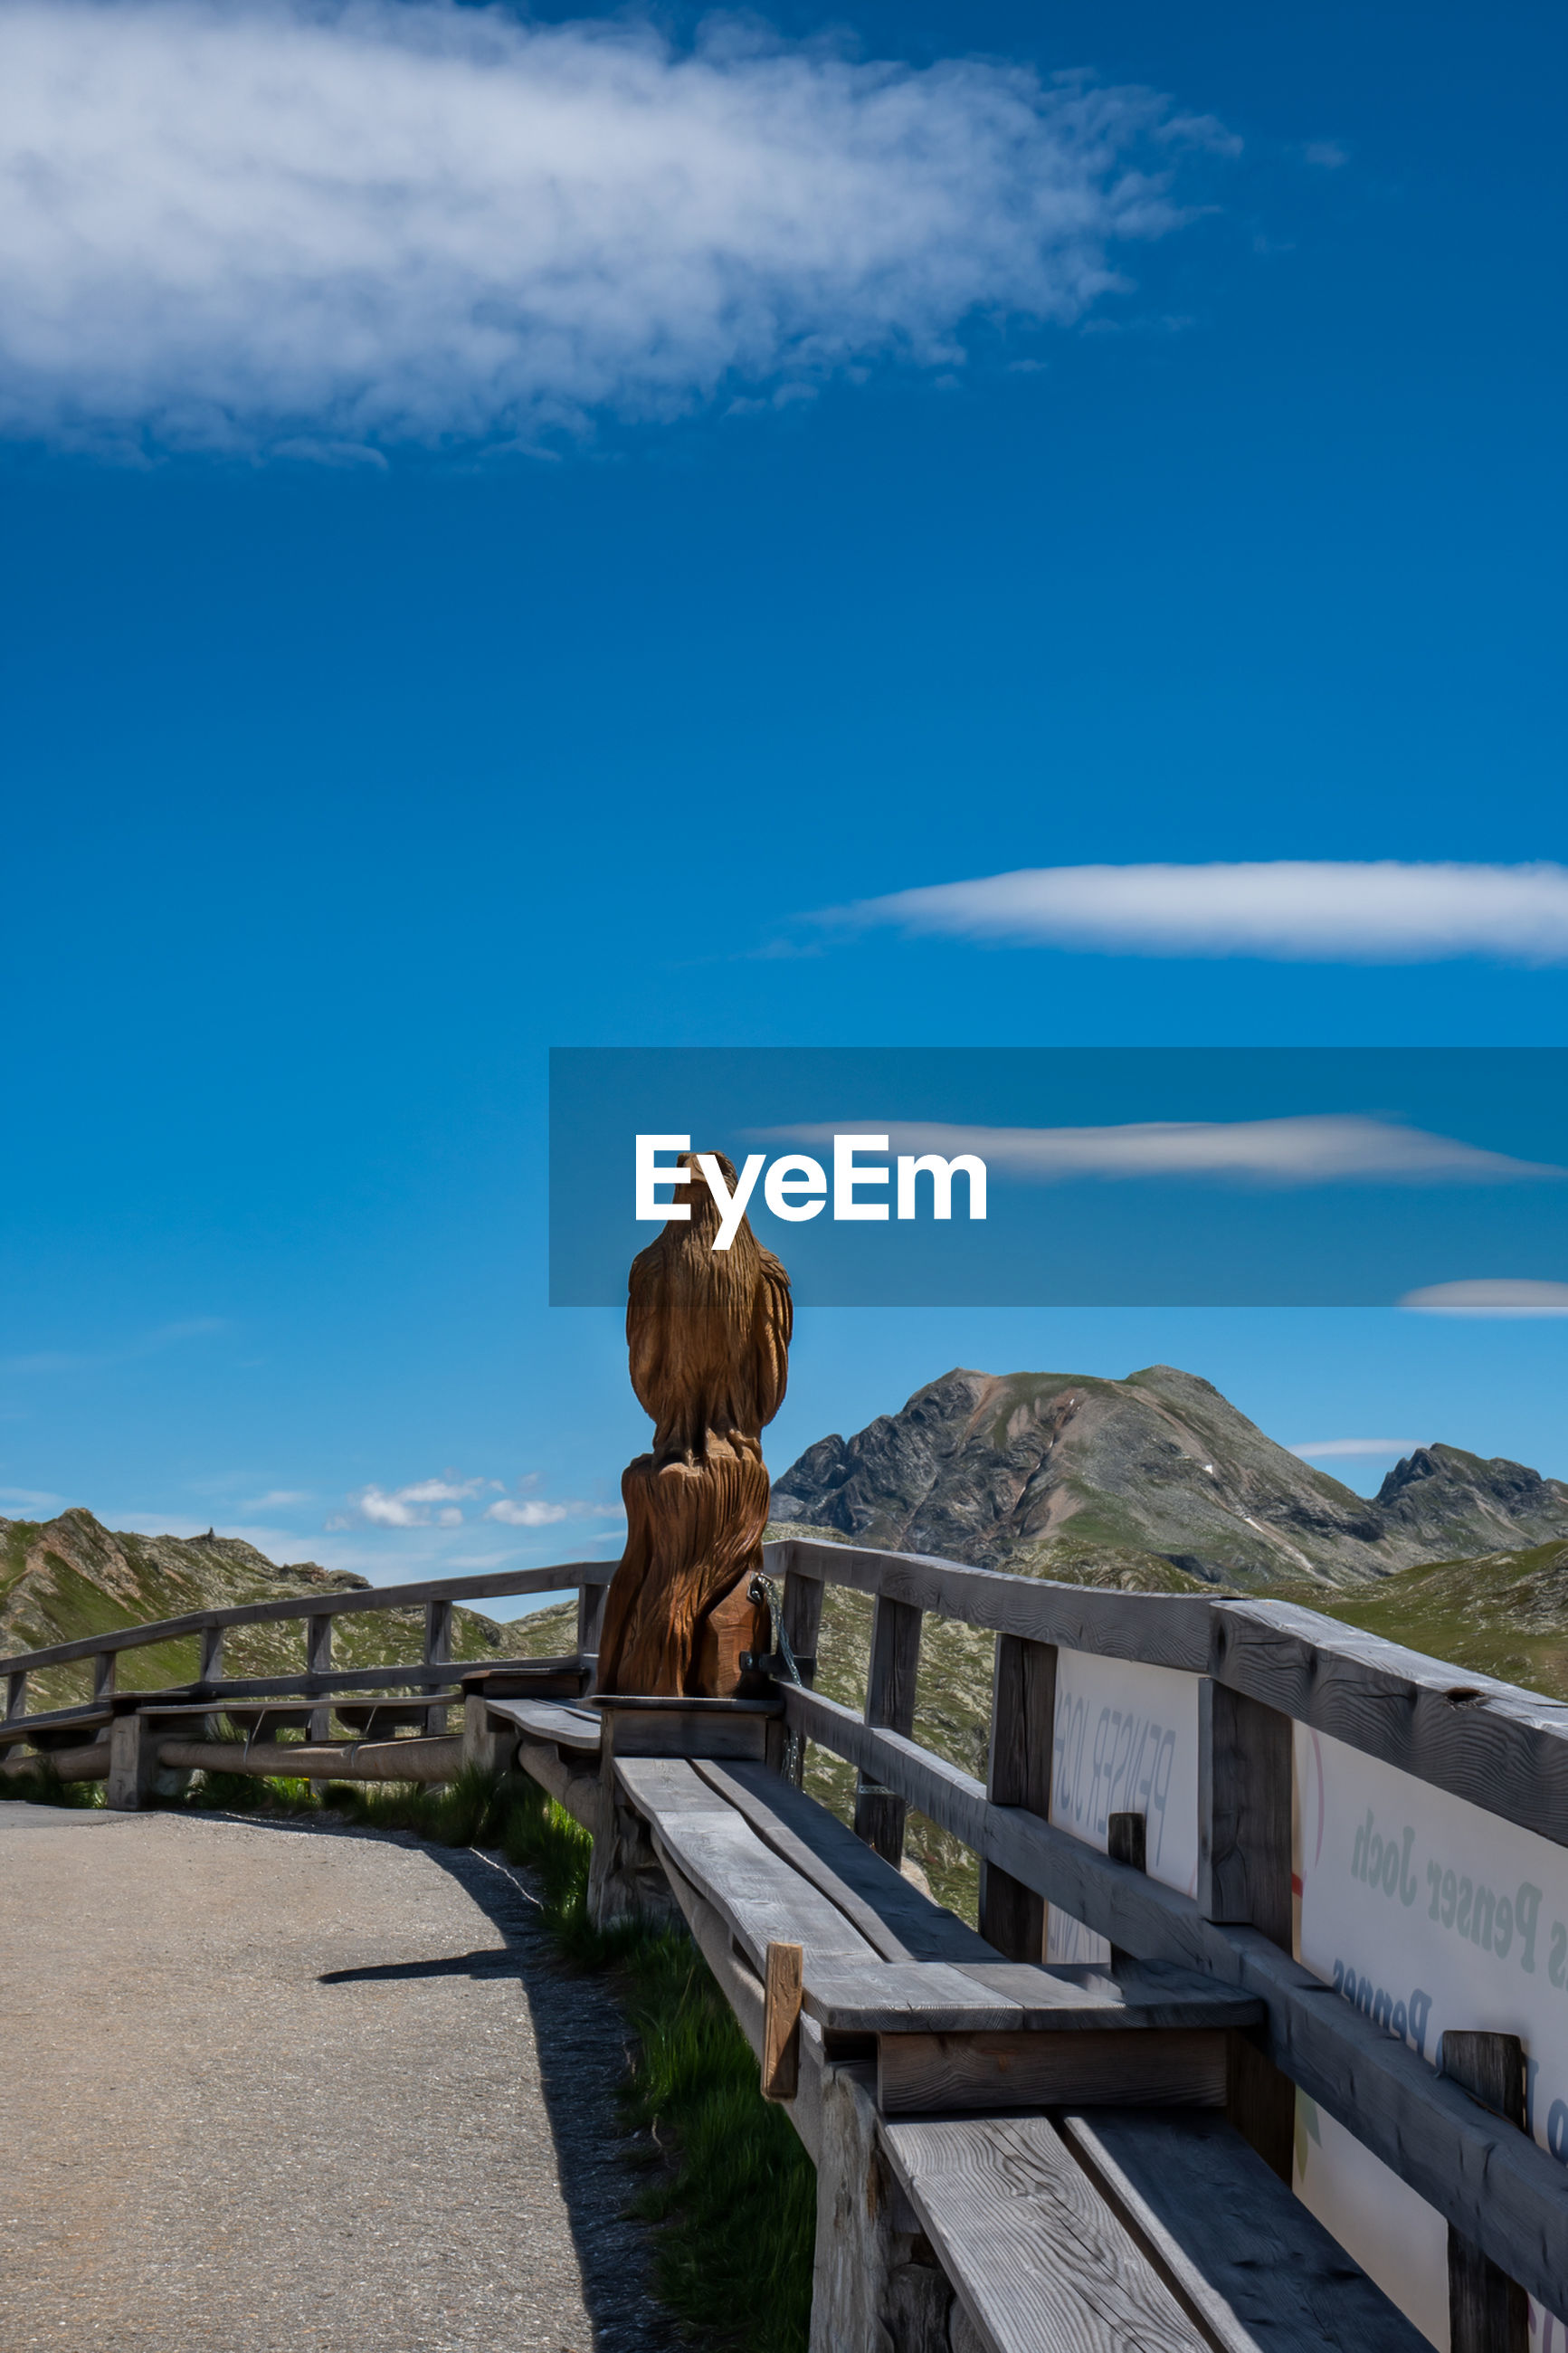 sky, day, nature, cloud - sky, mountain, blue, rear view, one person, real people, direction, wood - material, full length, leisure activity, beauty in nature, lifestyles, tranquil scene, architecture, tranquility, women